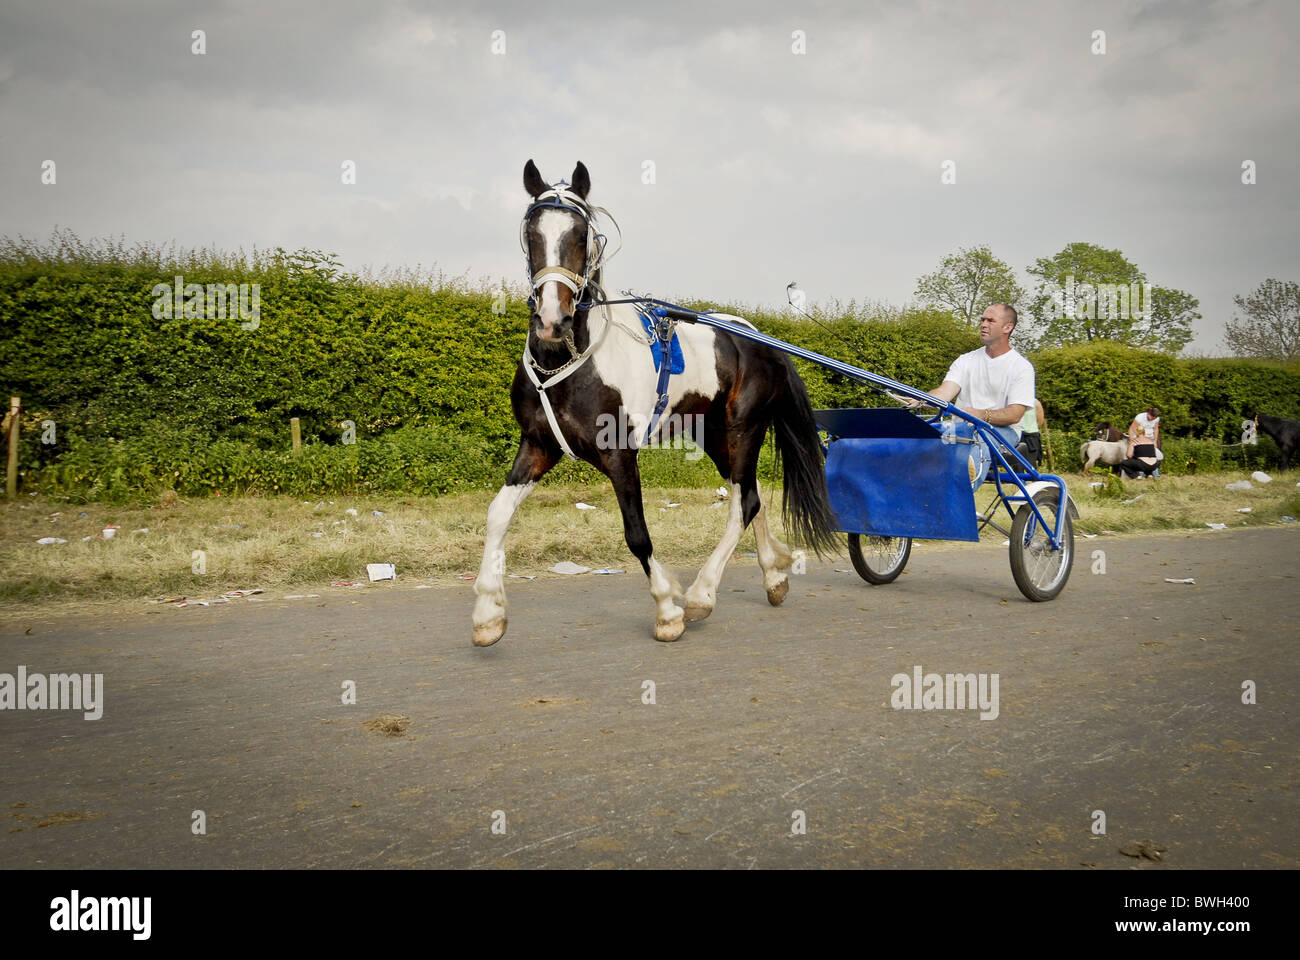 Man with pony & trap - Stock Image